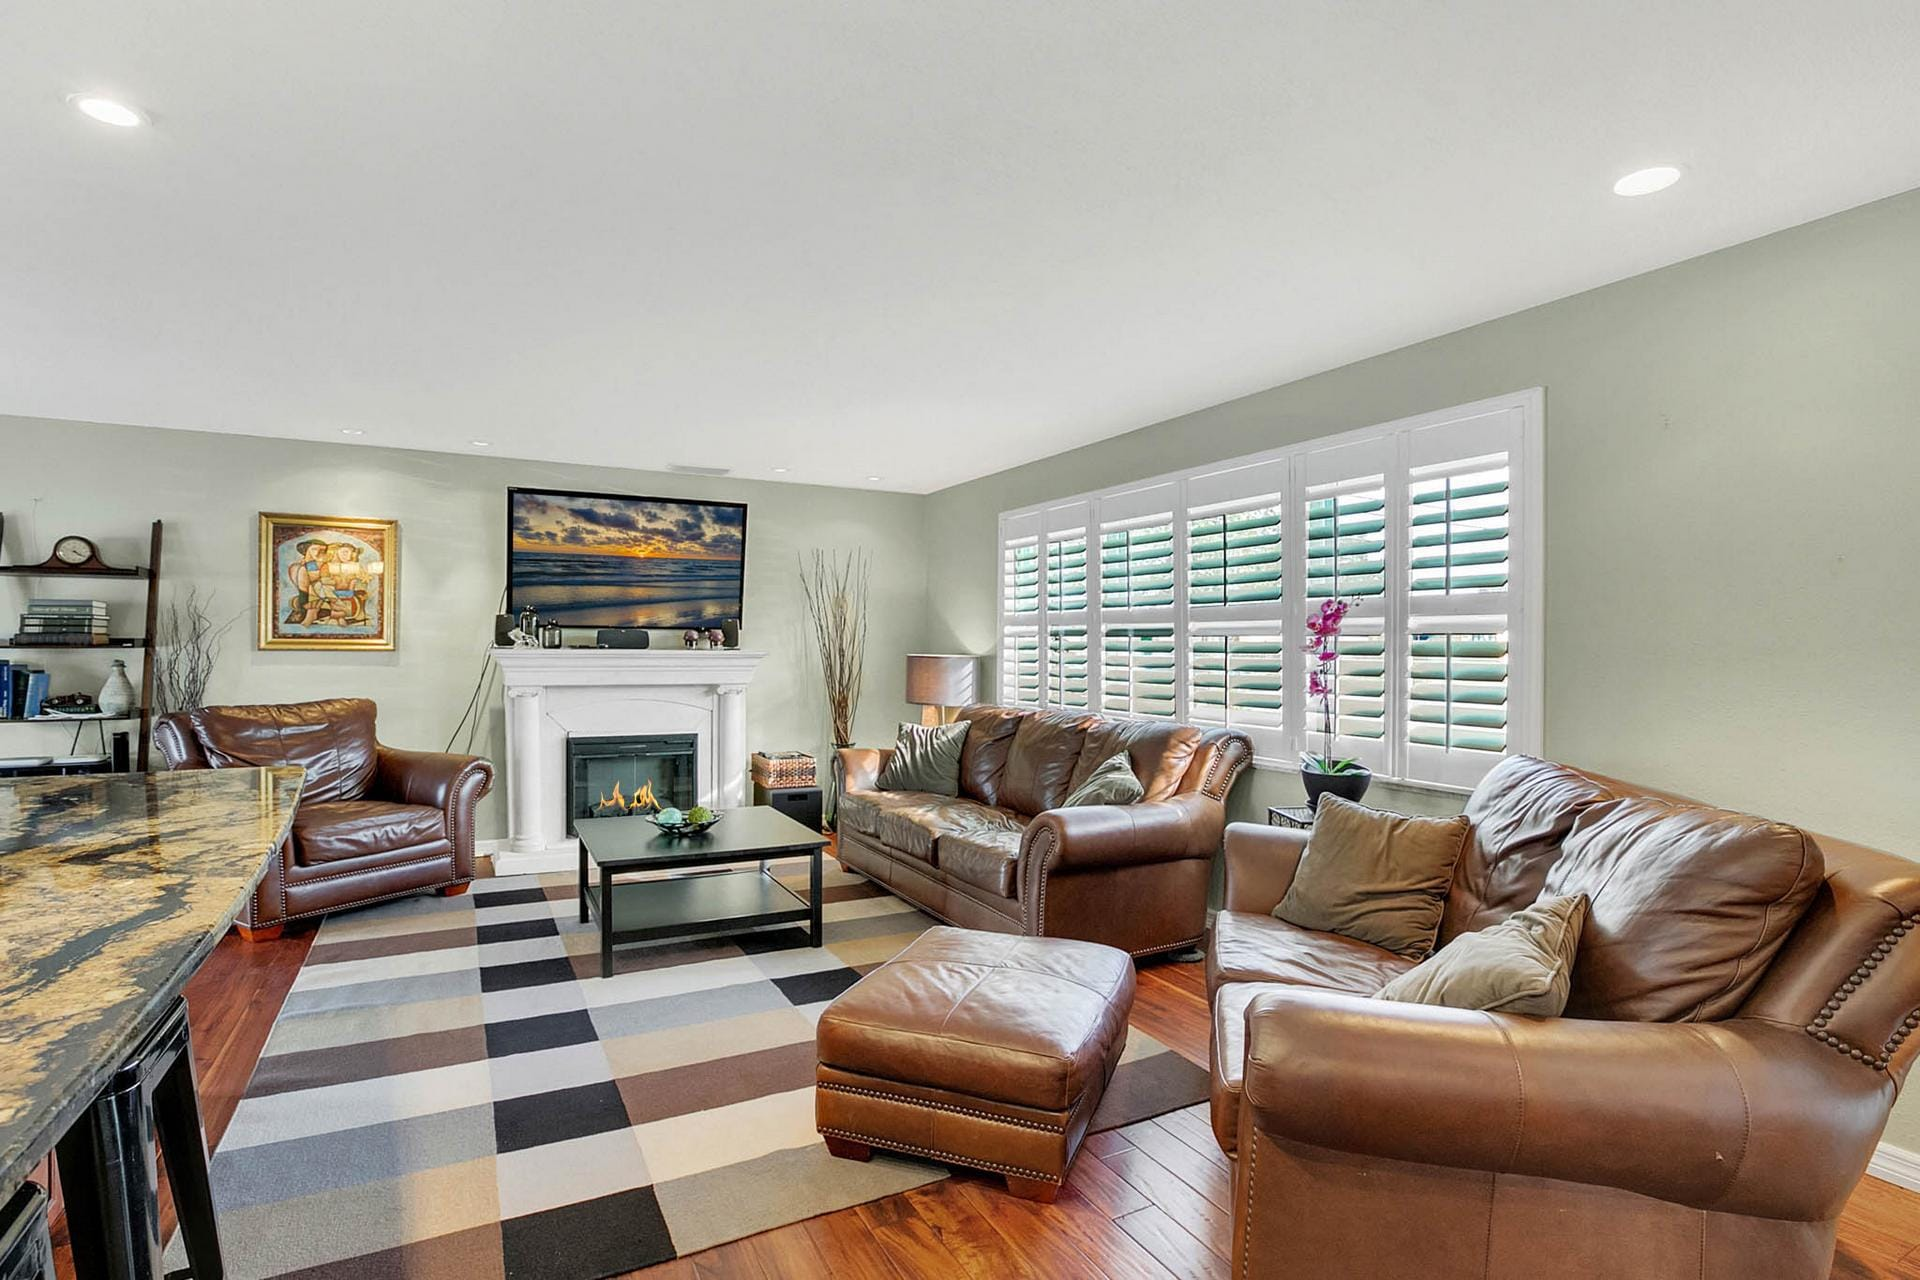 Recline on leather furniture by the fireplace and watch a 3D movie on the flat screen TV in the living room.